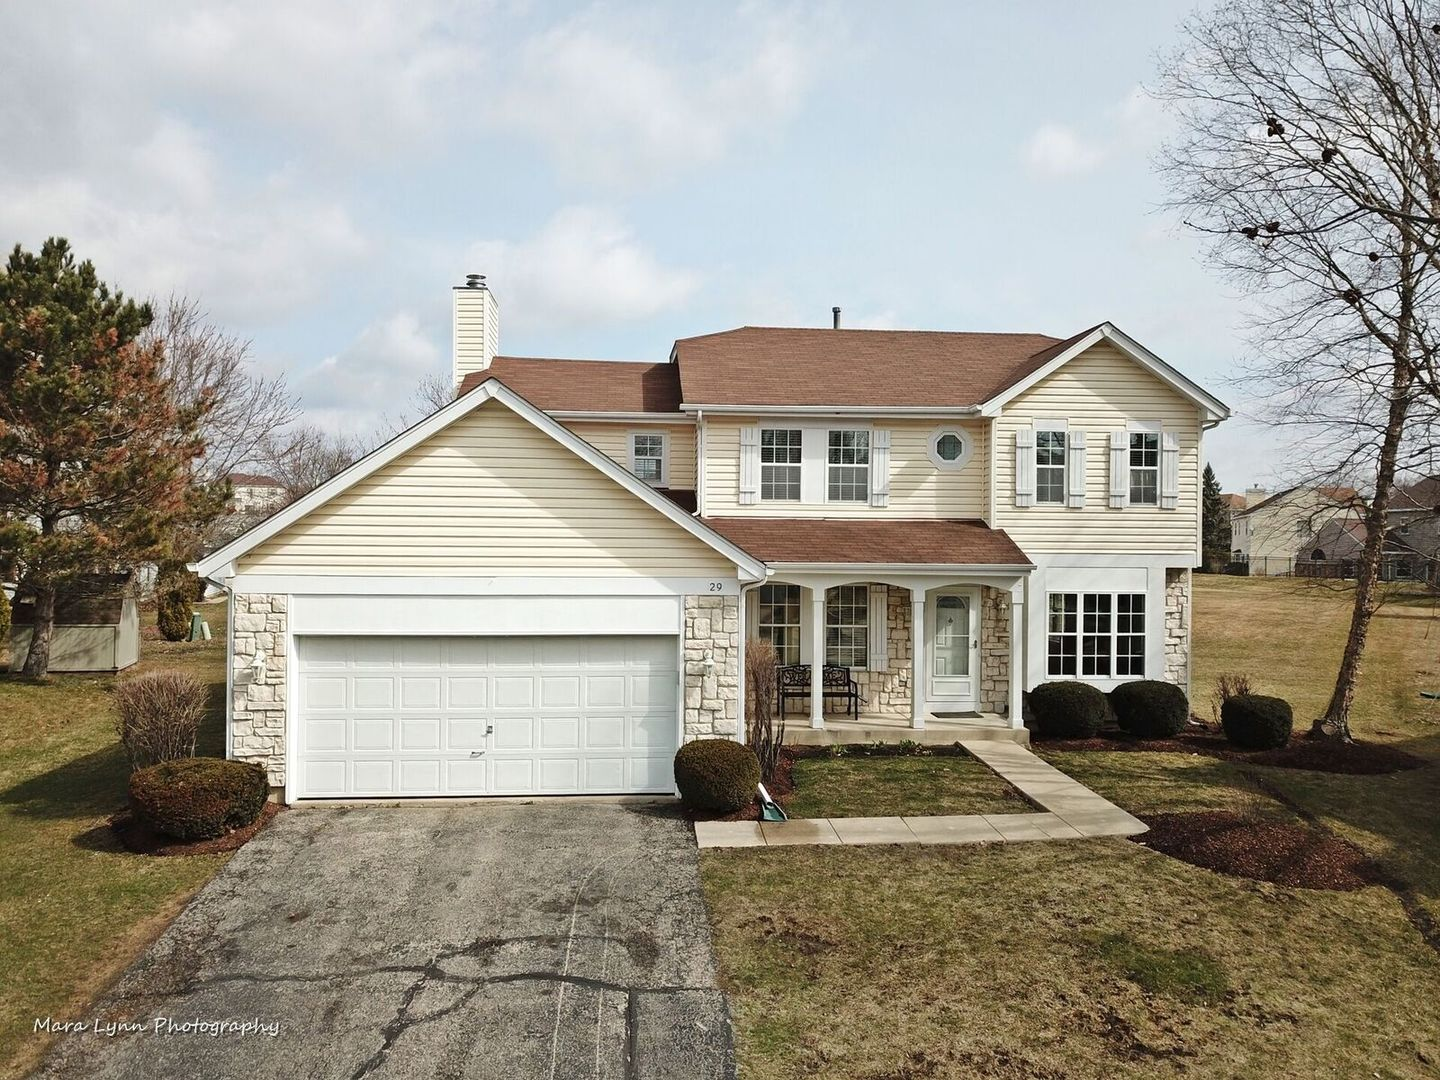 29 Mustang Court Geneva, St. Charles, Batavia, South Elgin, Elburn, Elgin, North Aurora, Aurora  Home Listings - The Cory Jones Team - RE/MAX Great American North Geneva, St. Charles, Batavia Real Estate Agent